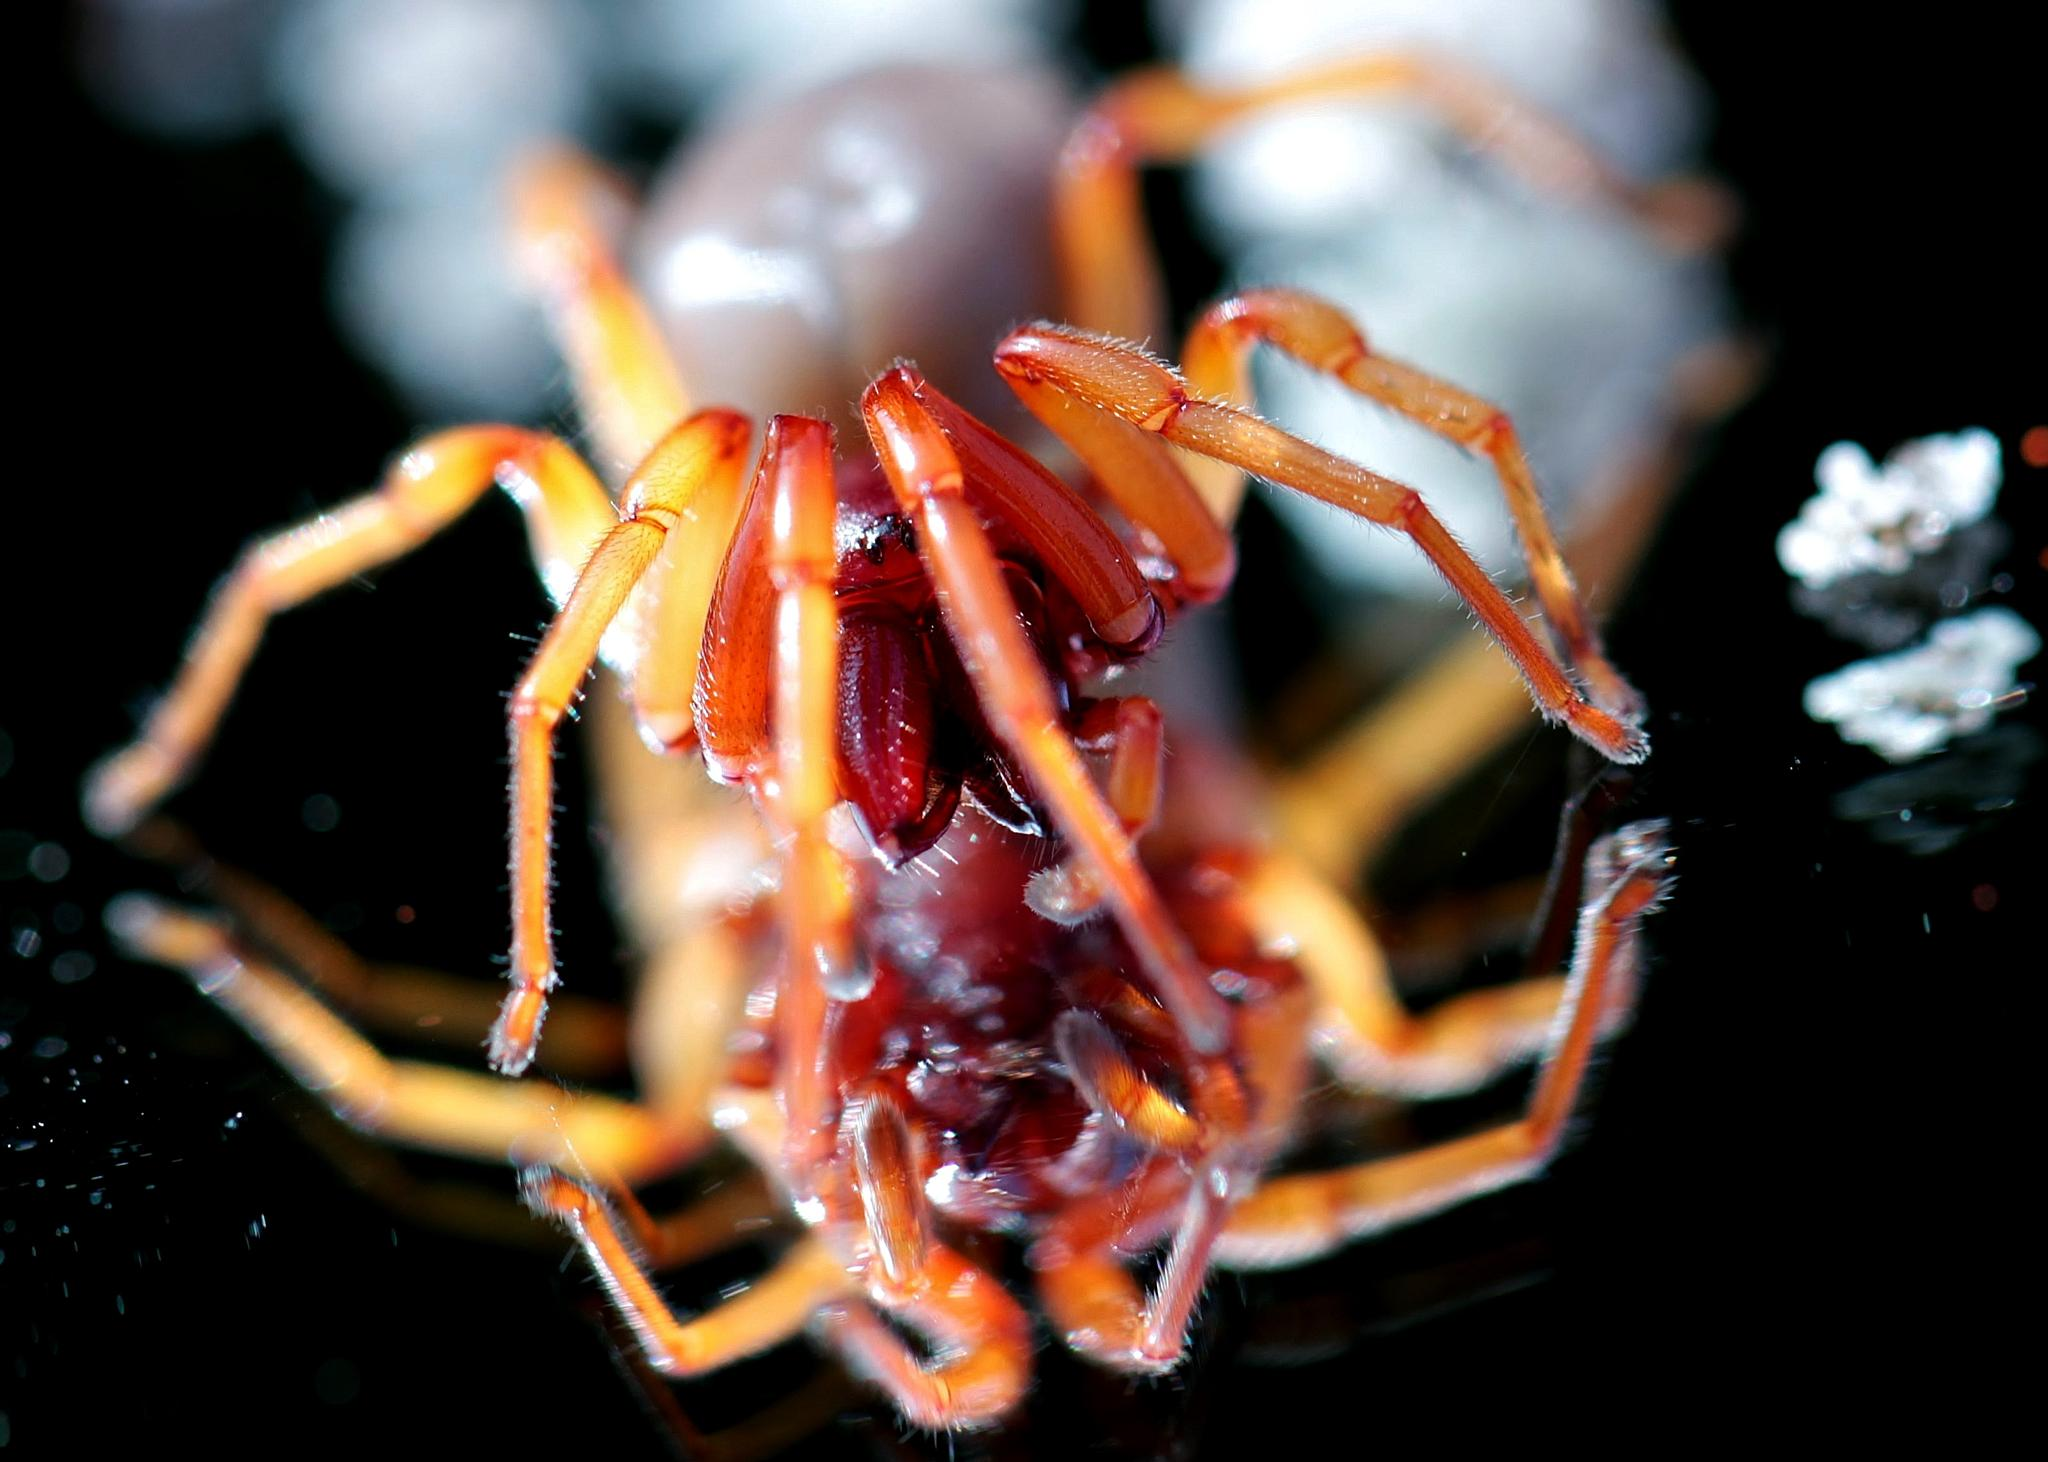 Table spider by Yves de Boer